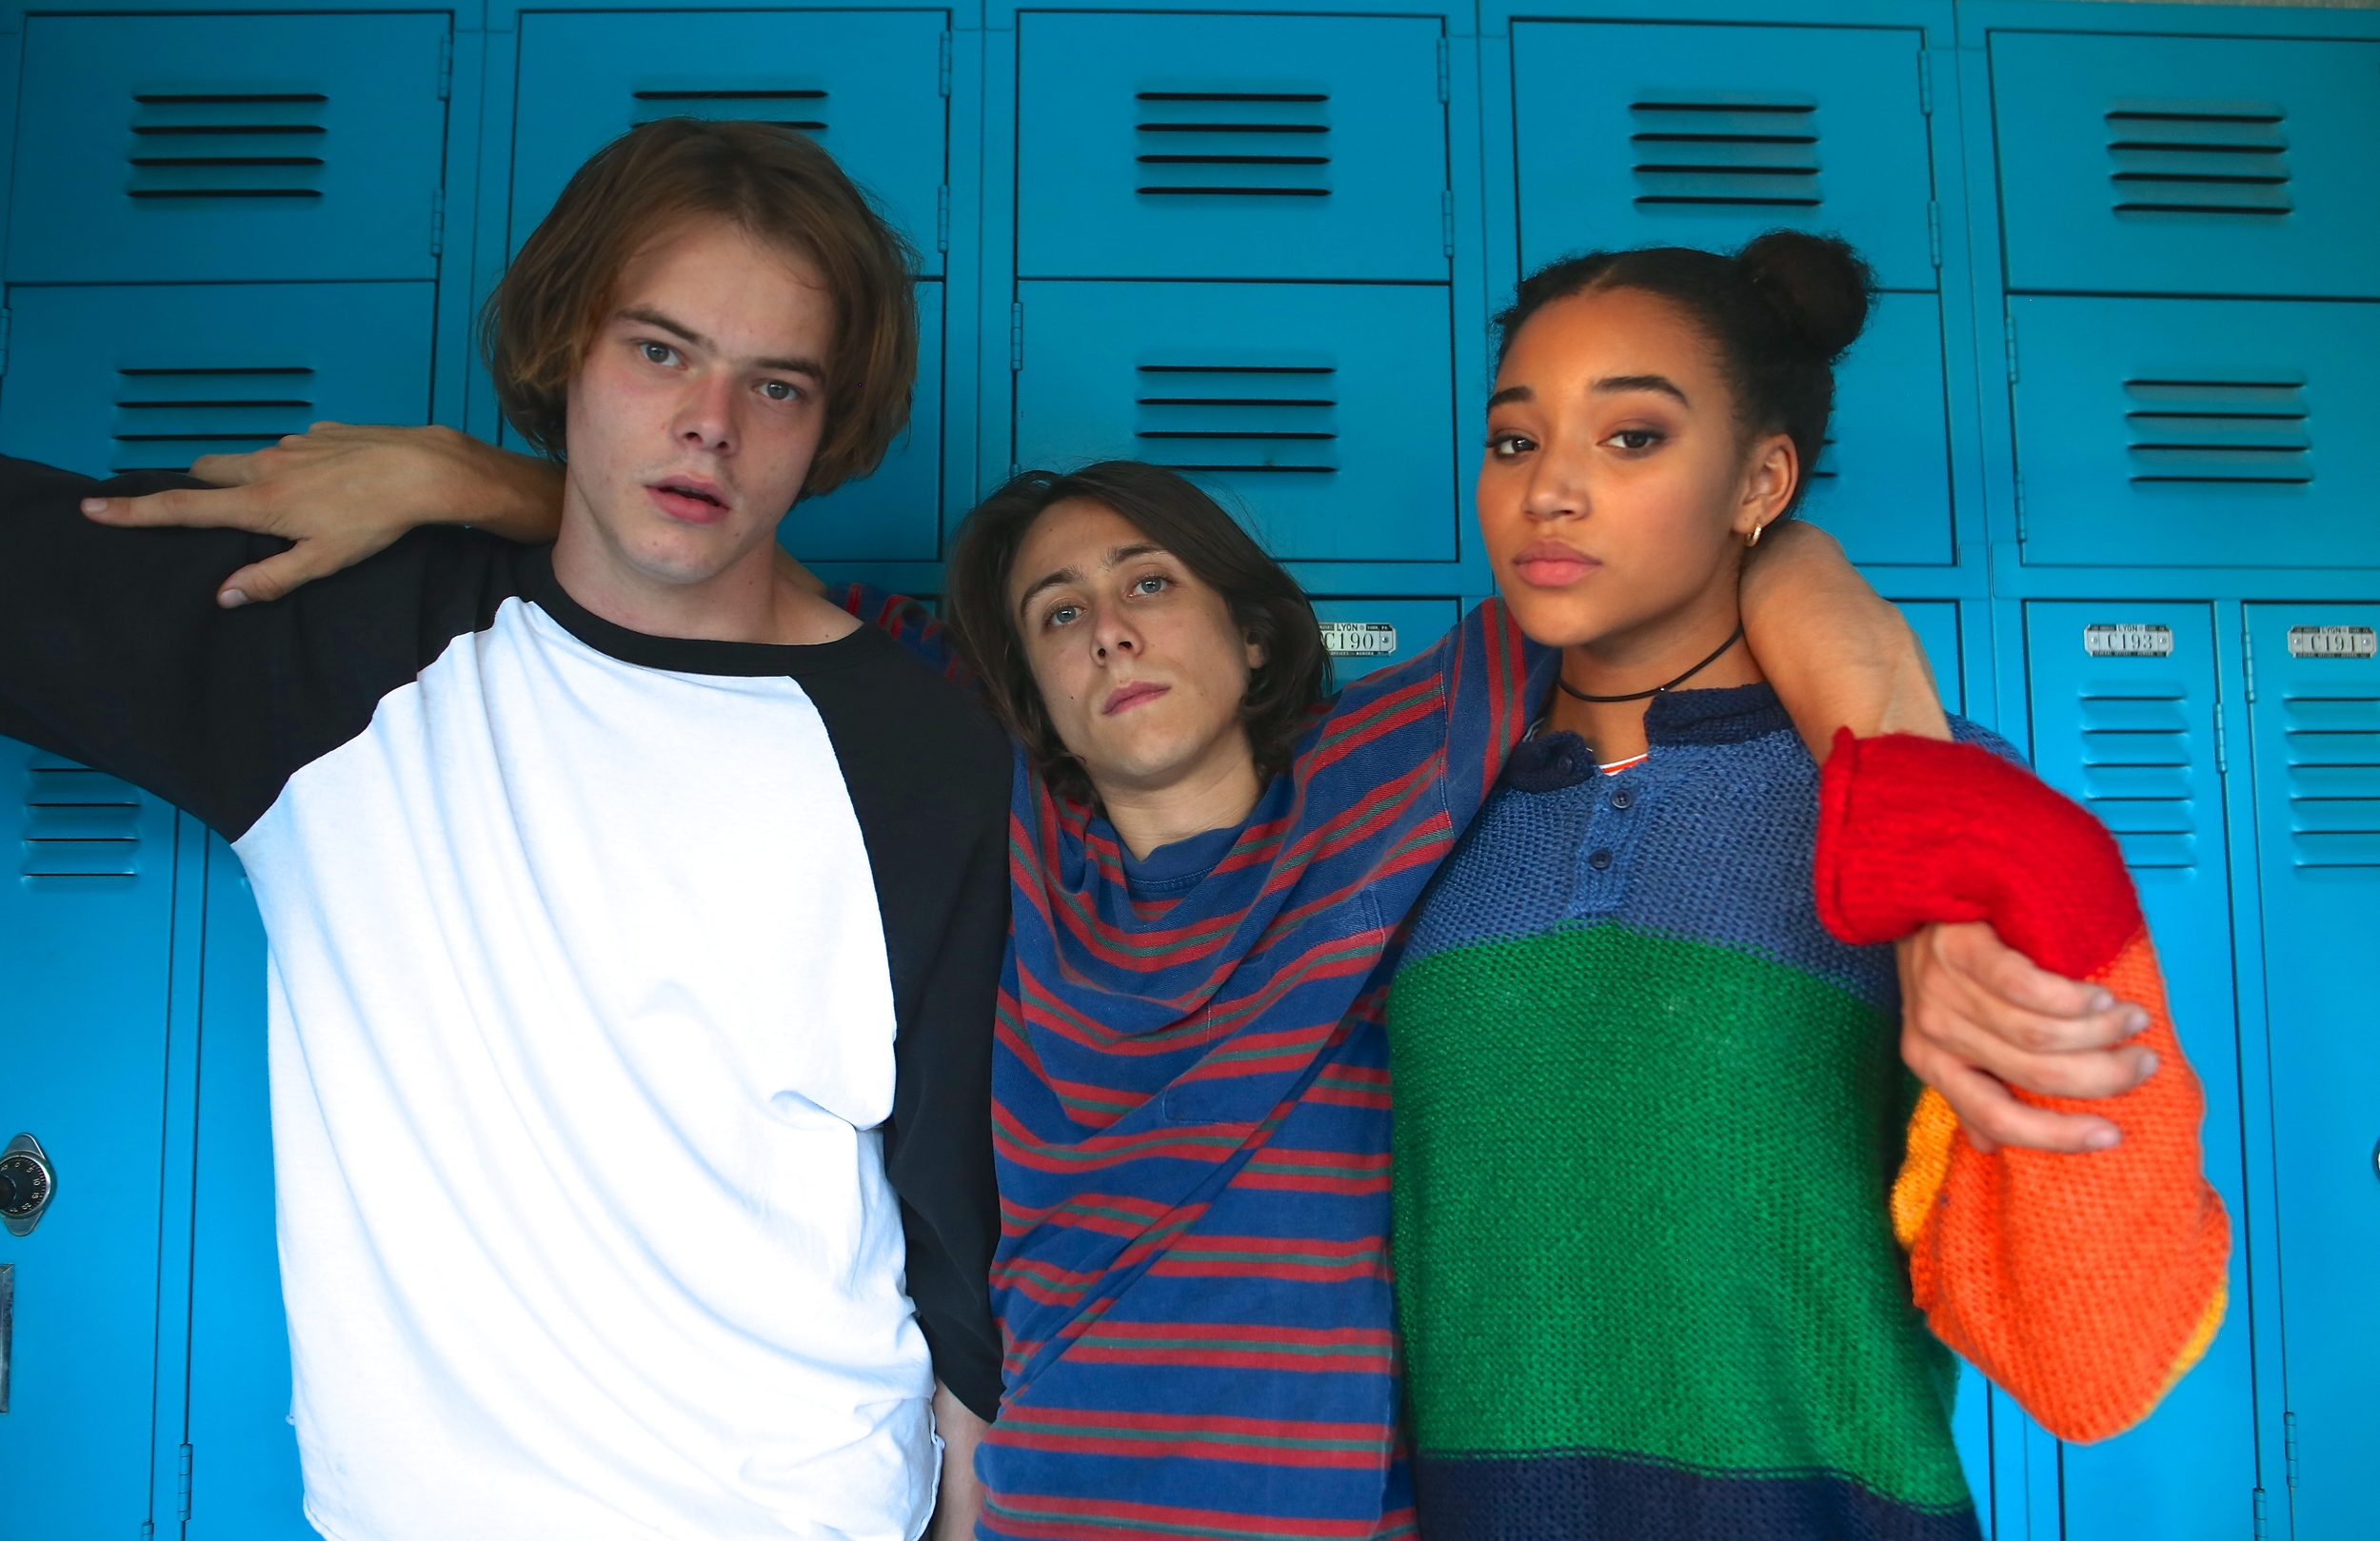 (from l to r) The lead actors in As You Are: Charlie Heaton, Owen Campbell & Amandla Stenberg